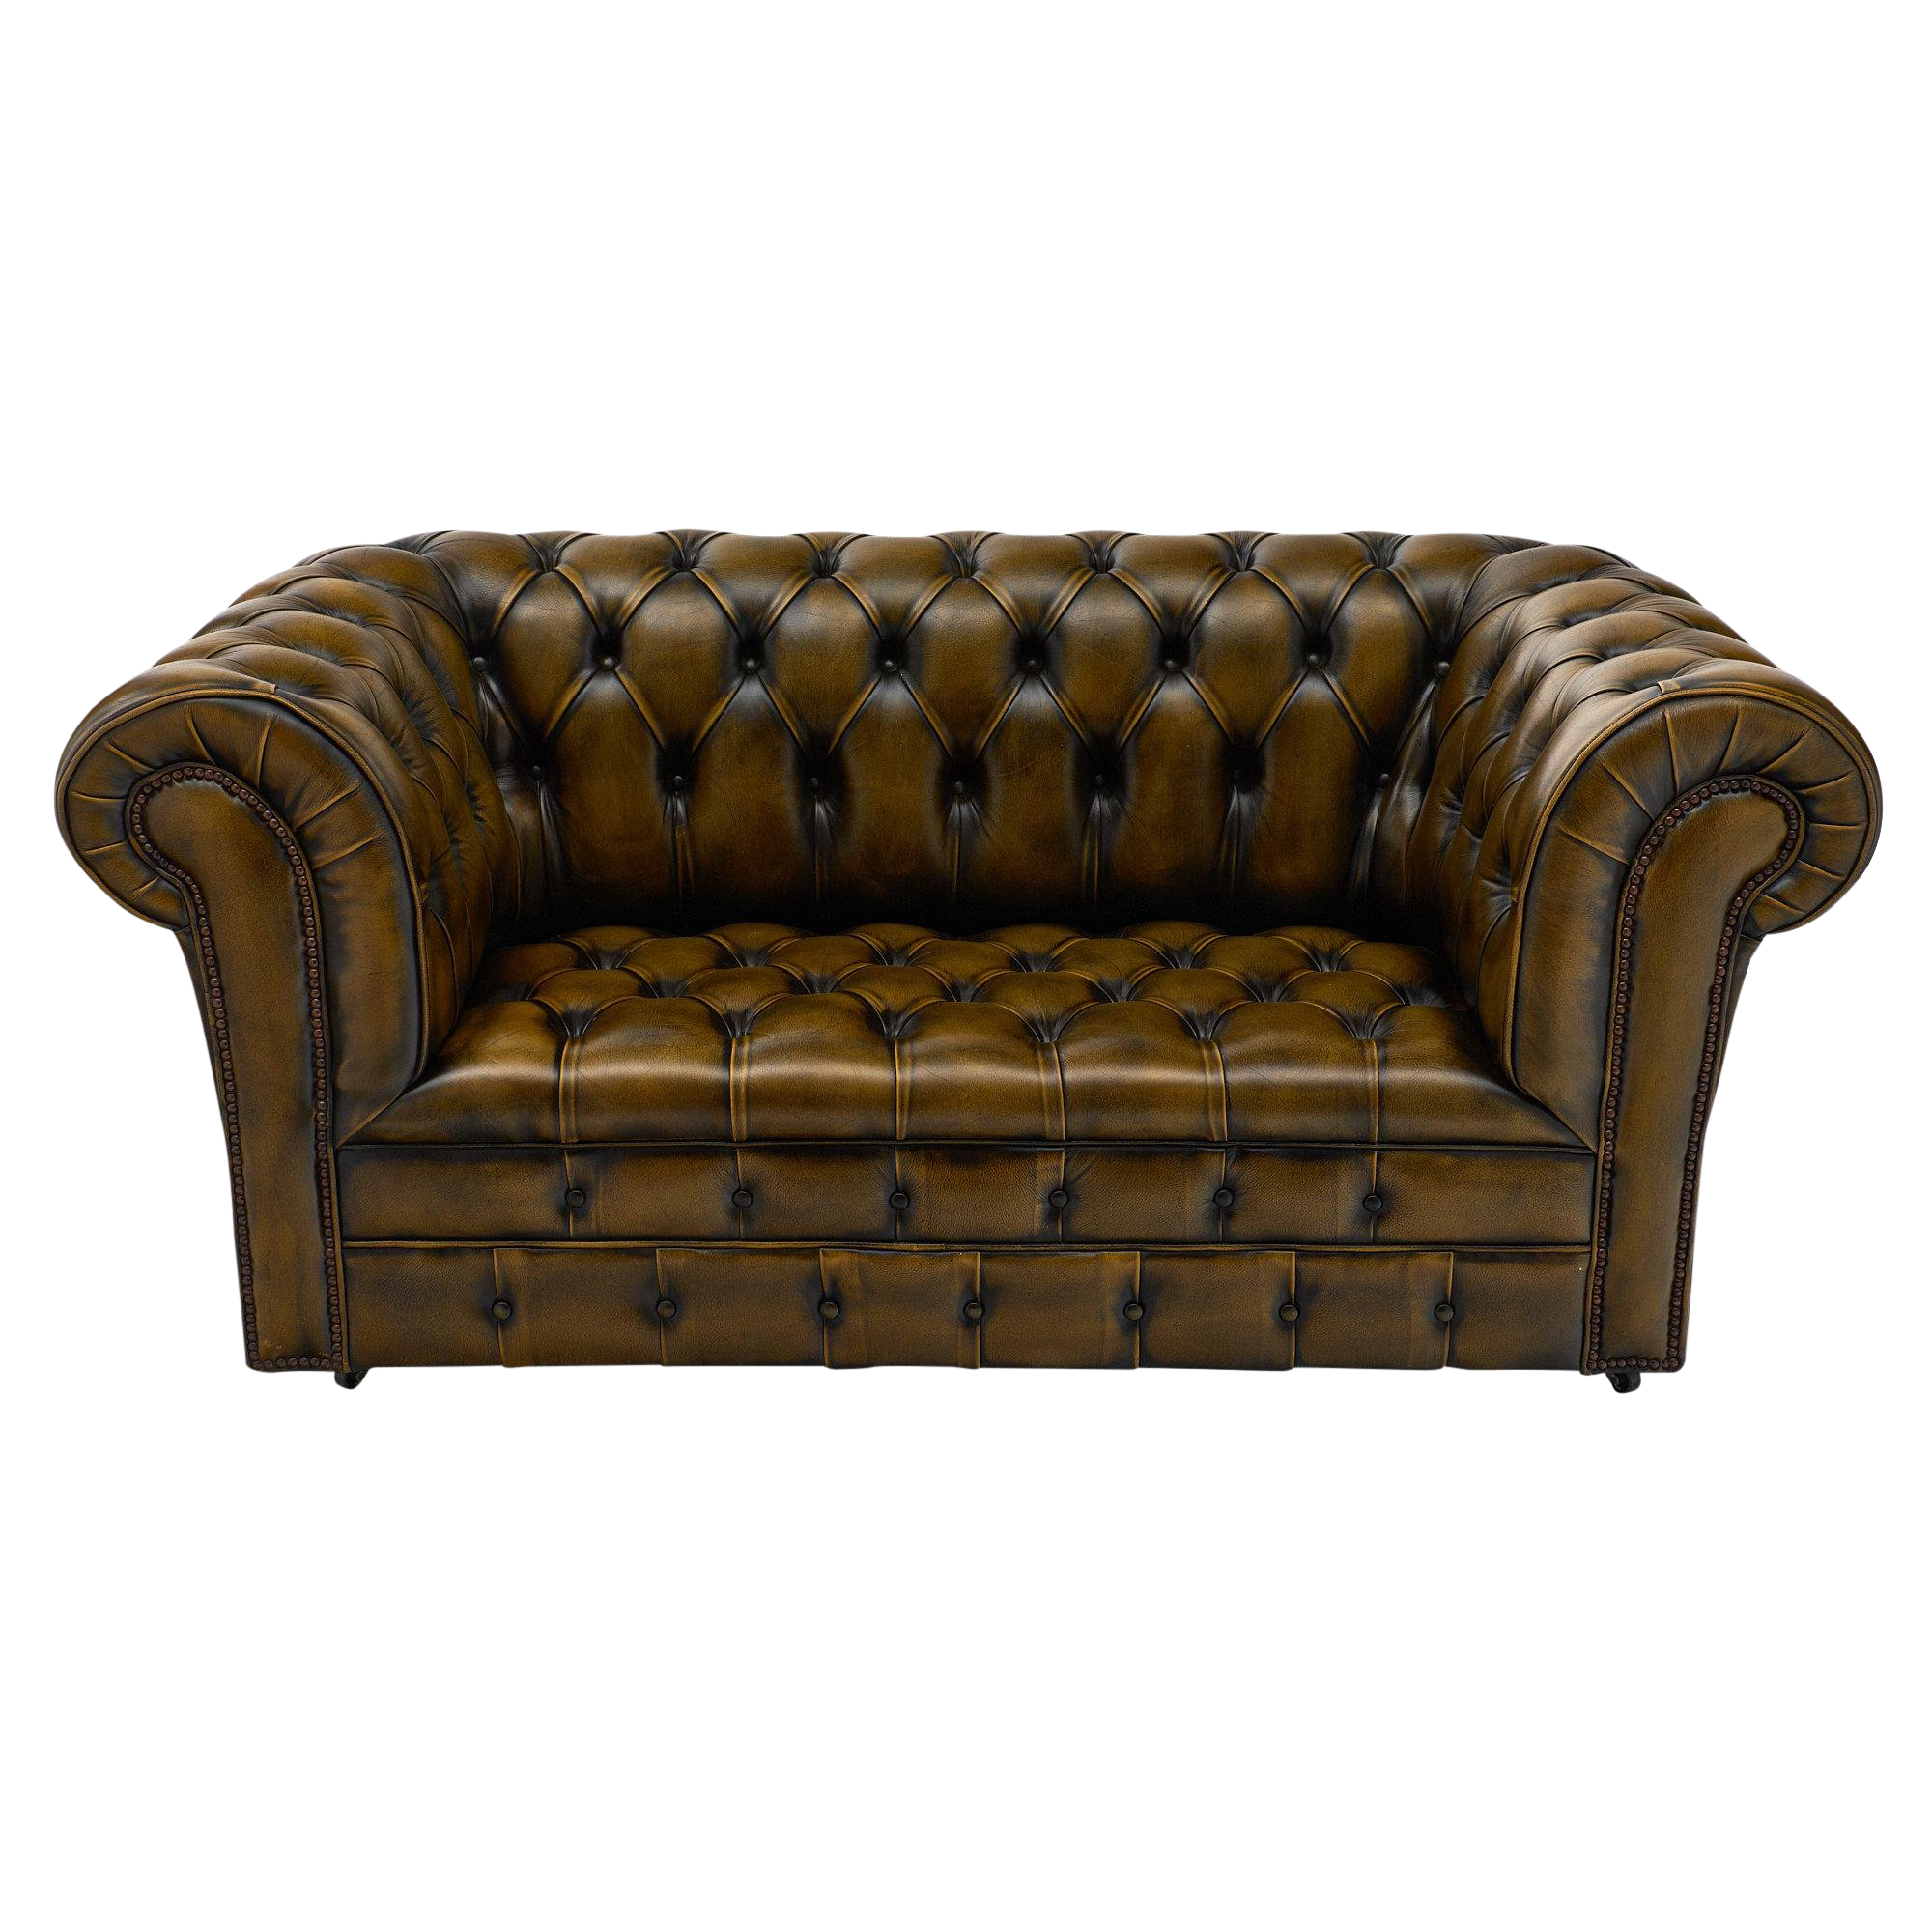 Superieur Vintage English Leather Chesterfield Sofa